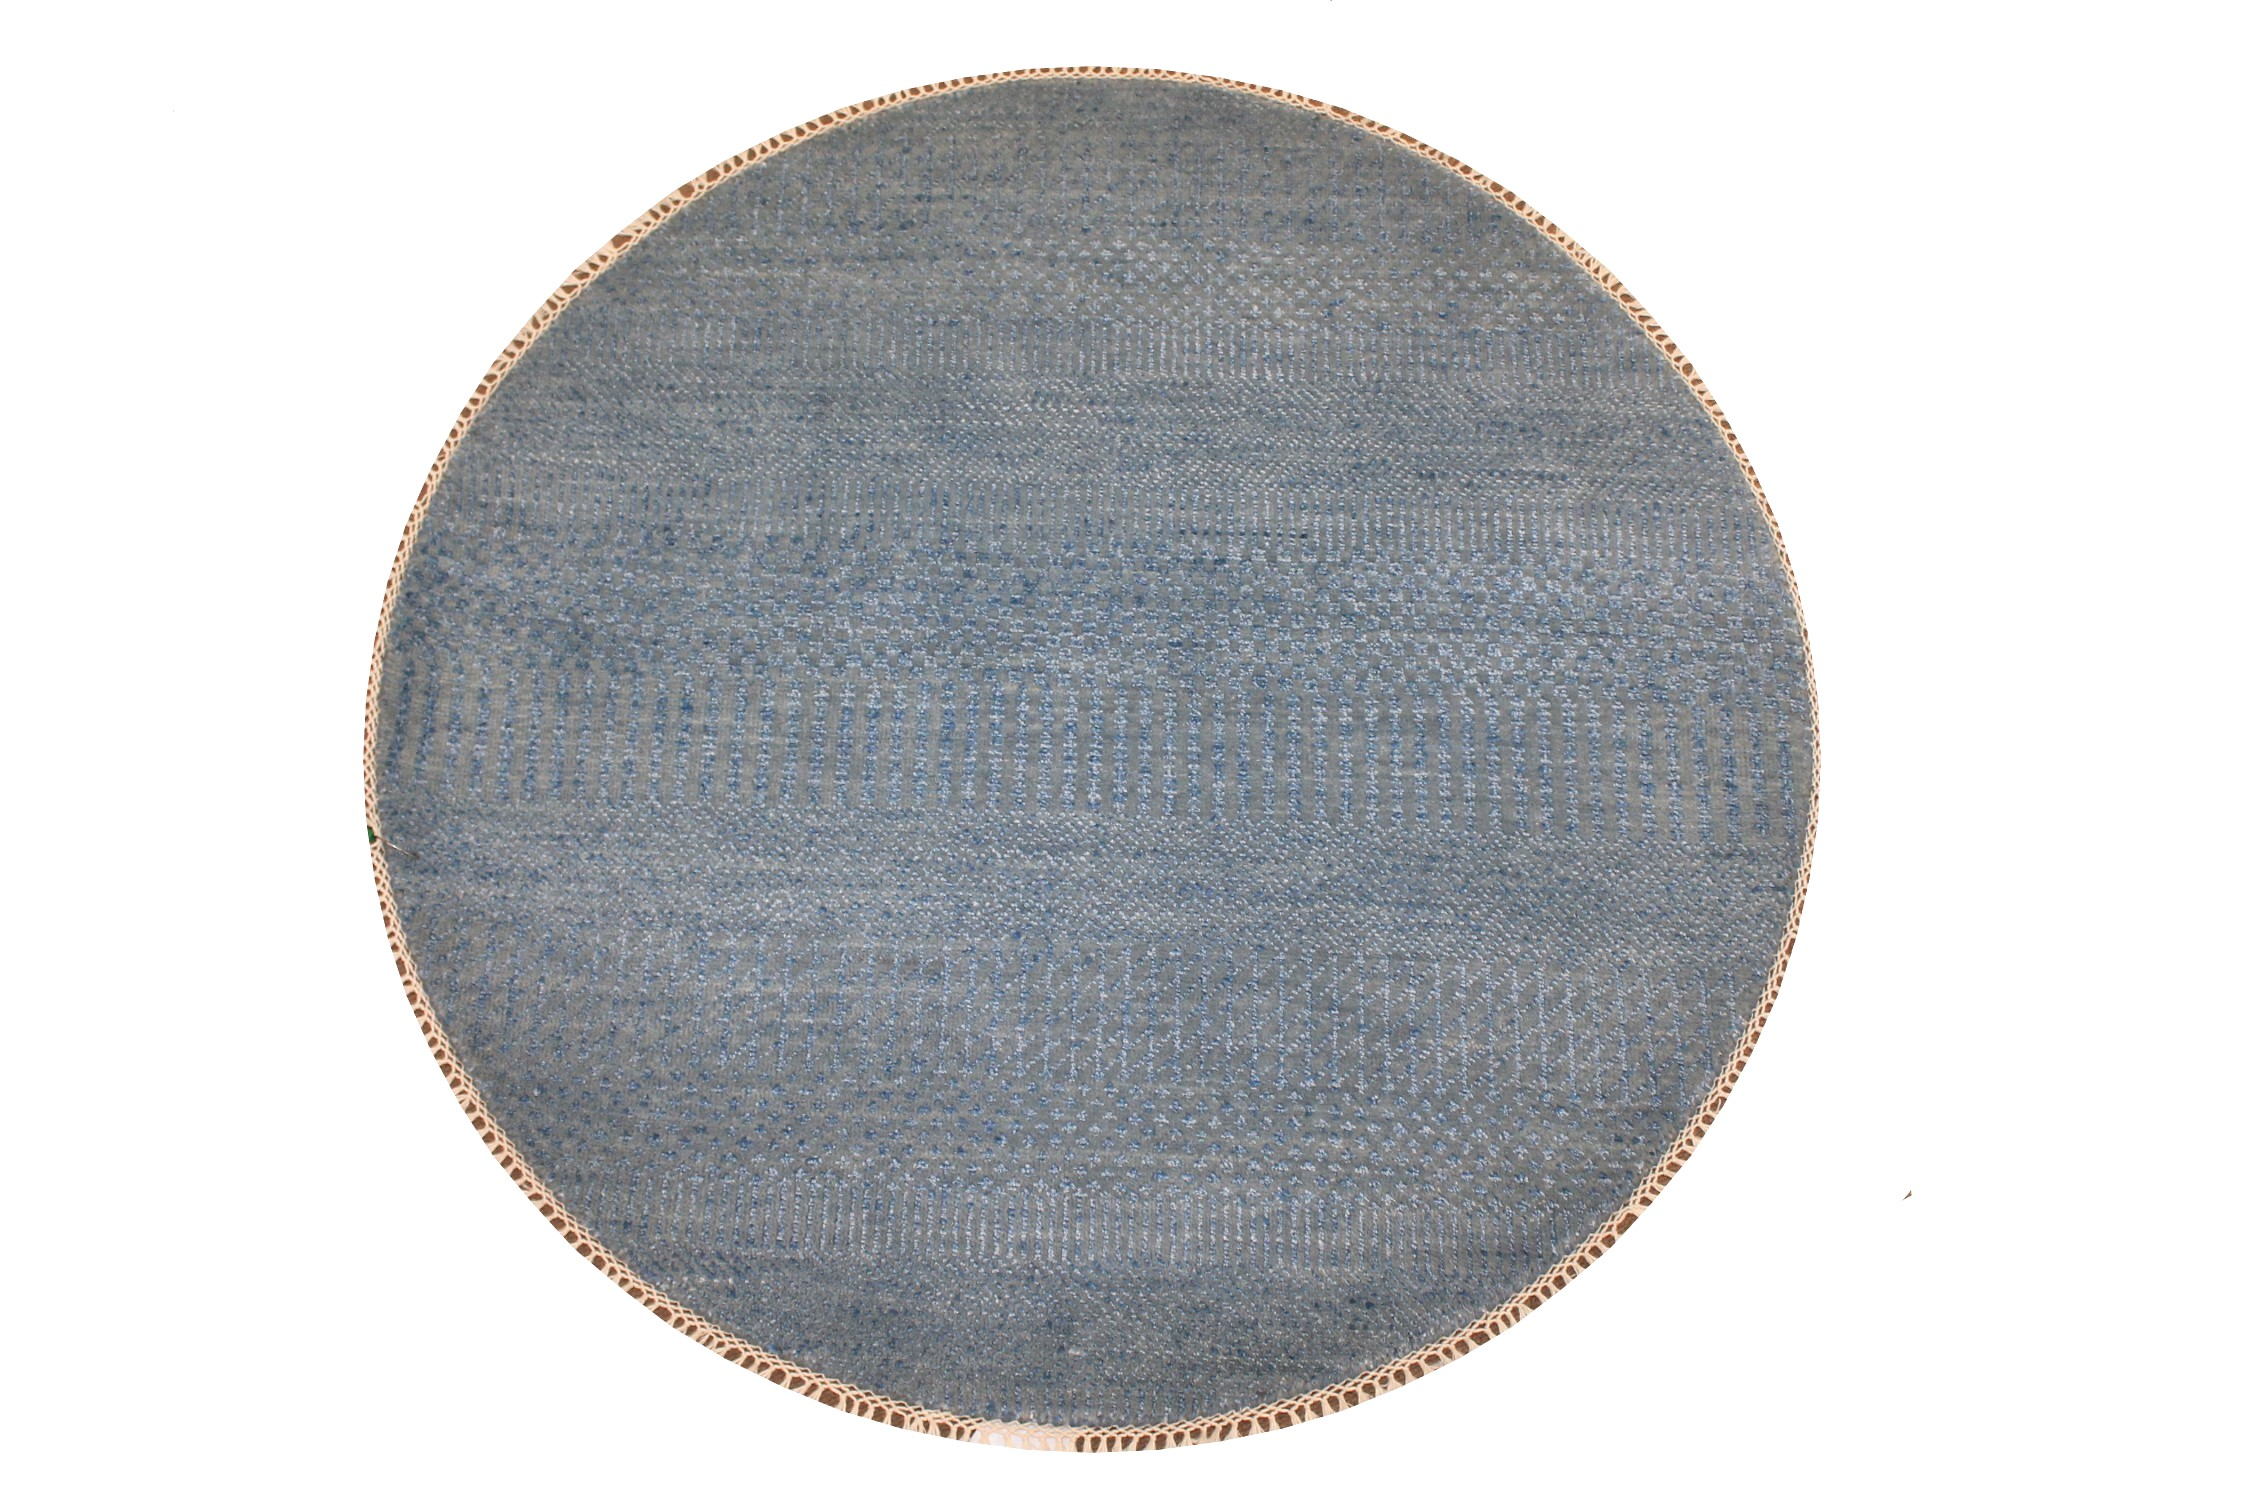 3 ft. Round & Square Casual Hand Knotted Wool & Viscose Area Rug - MR024938